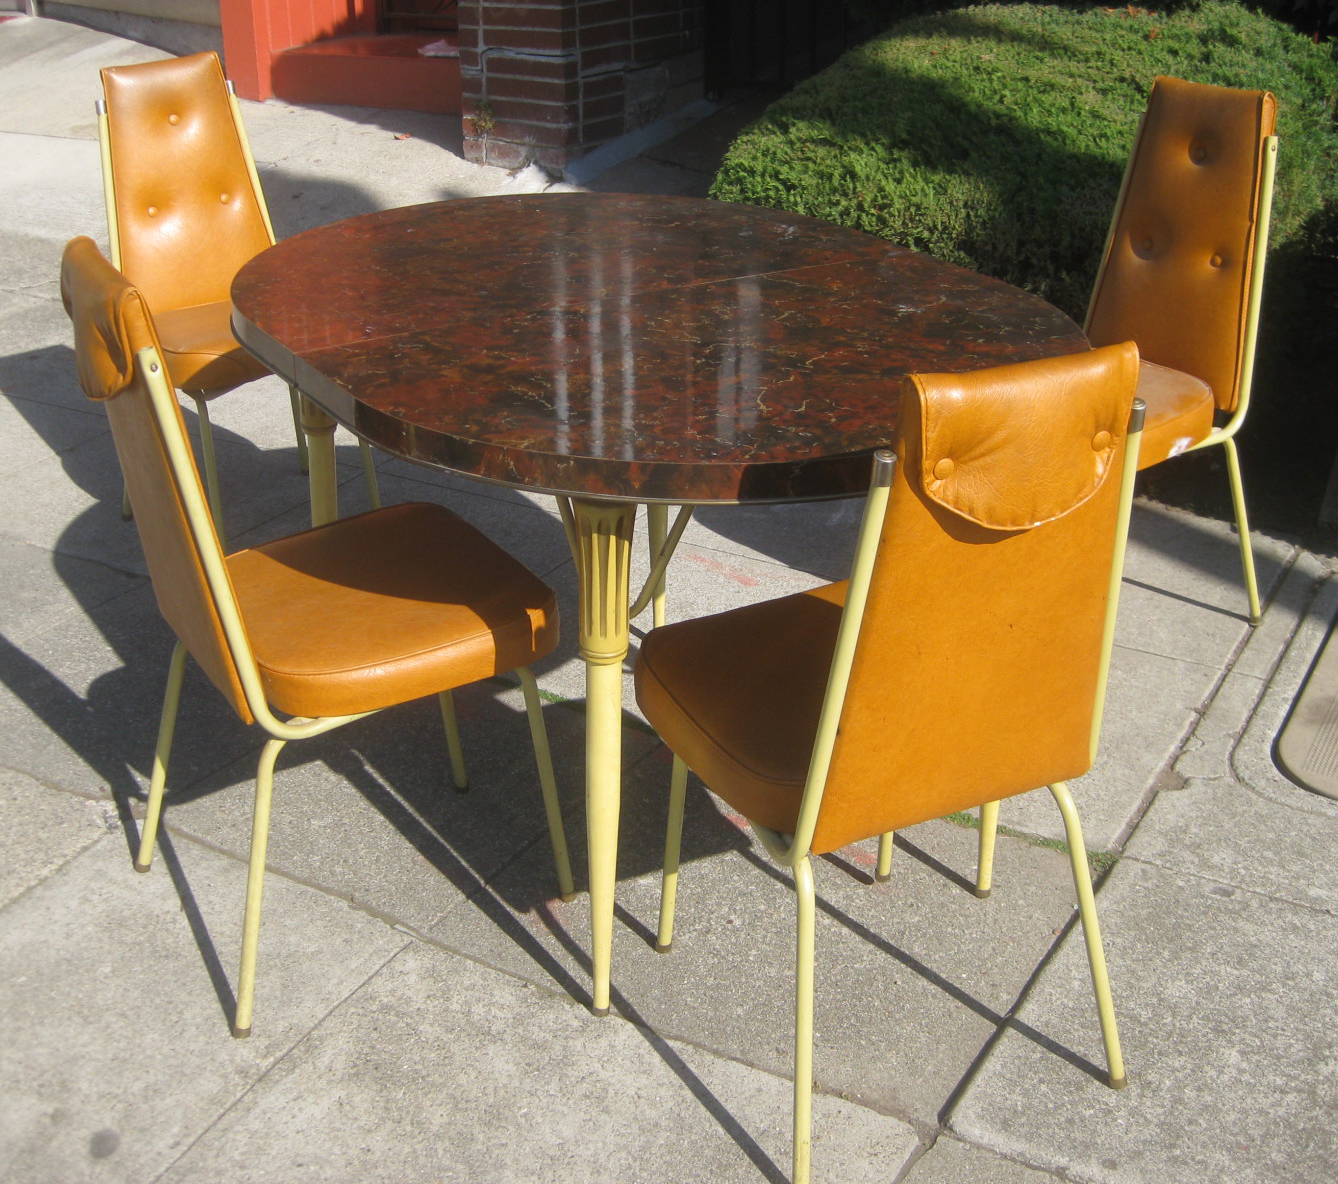 Colorful Kitchen Chairs: UHURU FURNITURE & COLLECTIBLES: SOLD